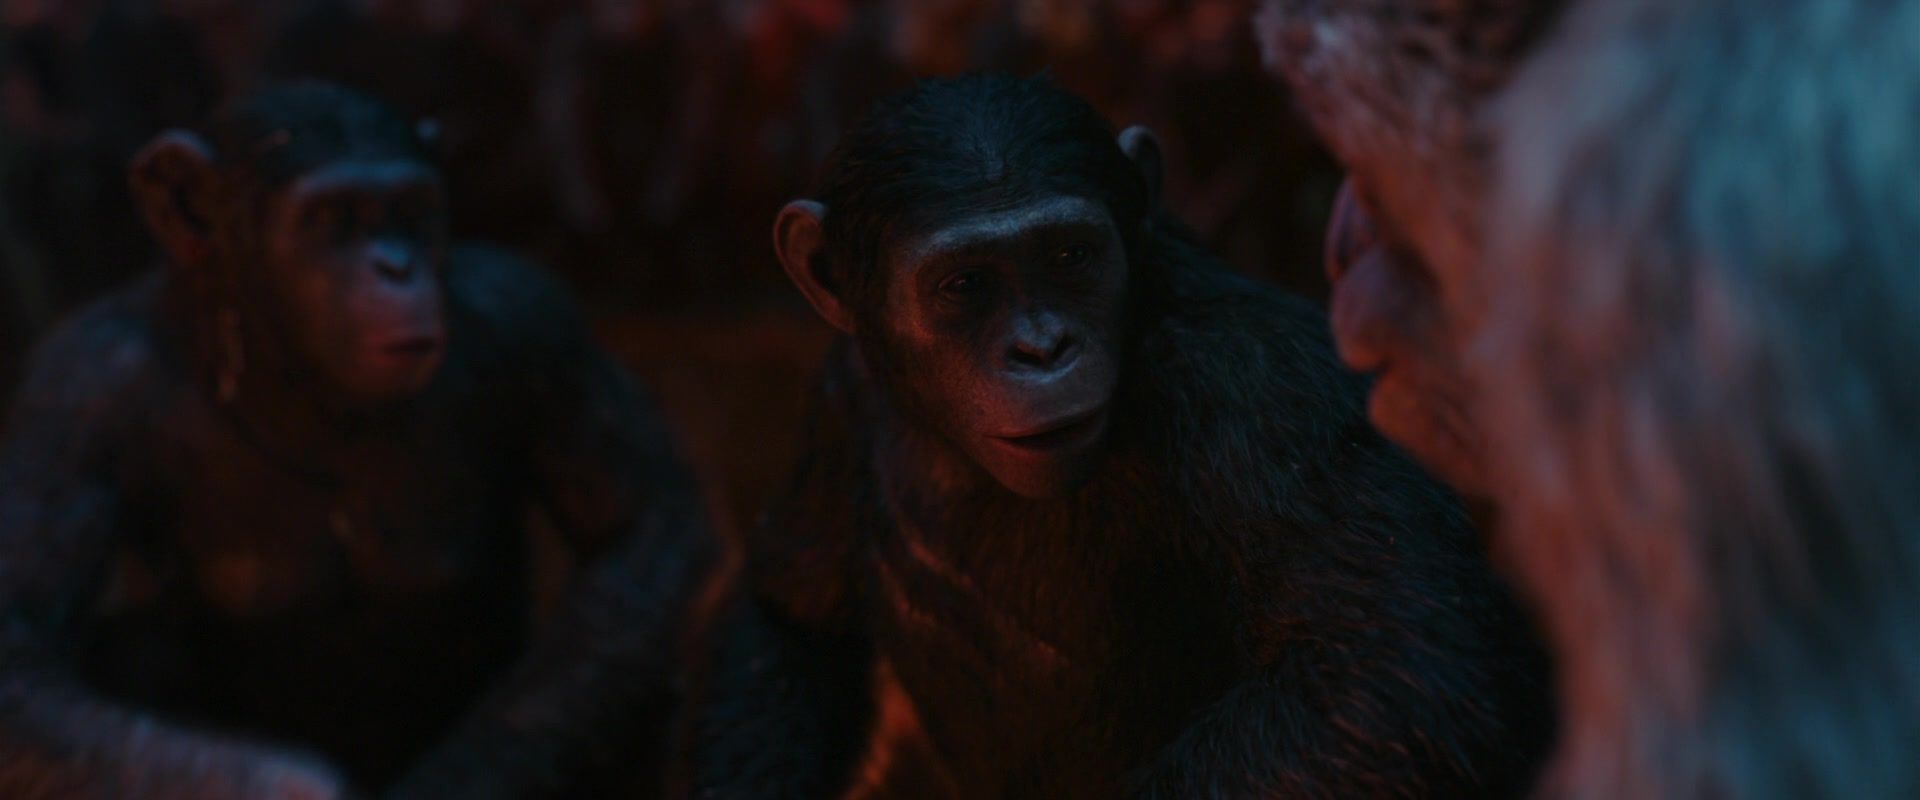 War For The Planet Of The Apes Screencap And Image Fancaps Net Planet Of The Apes Apes Planets